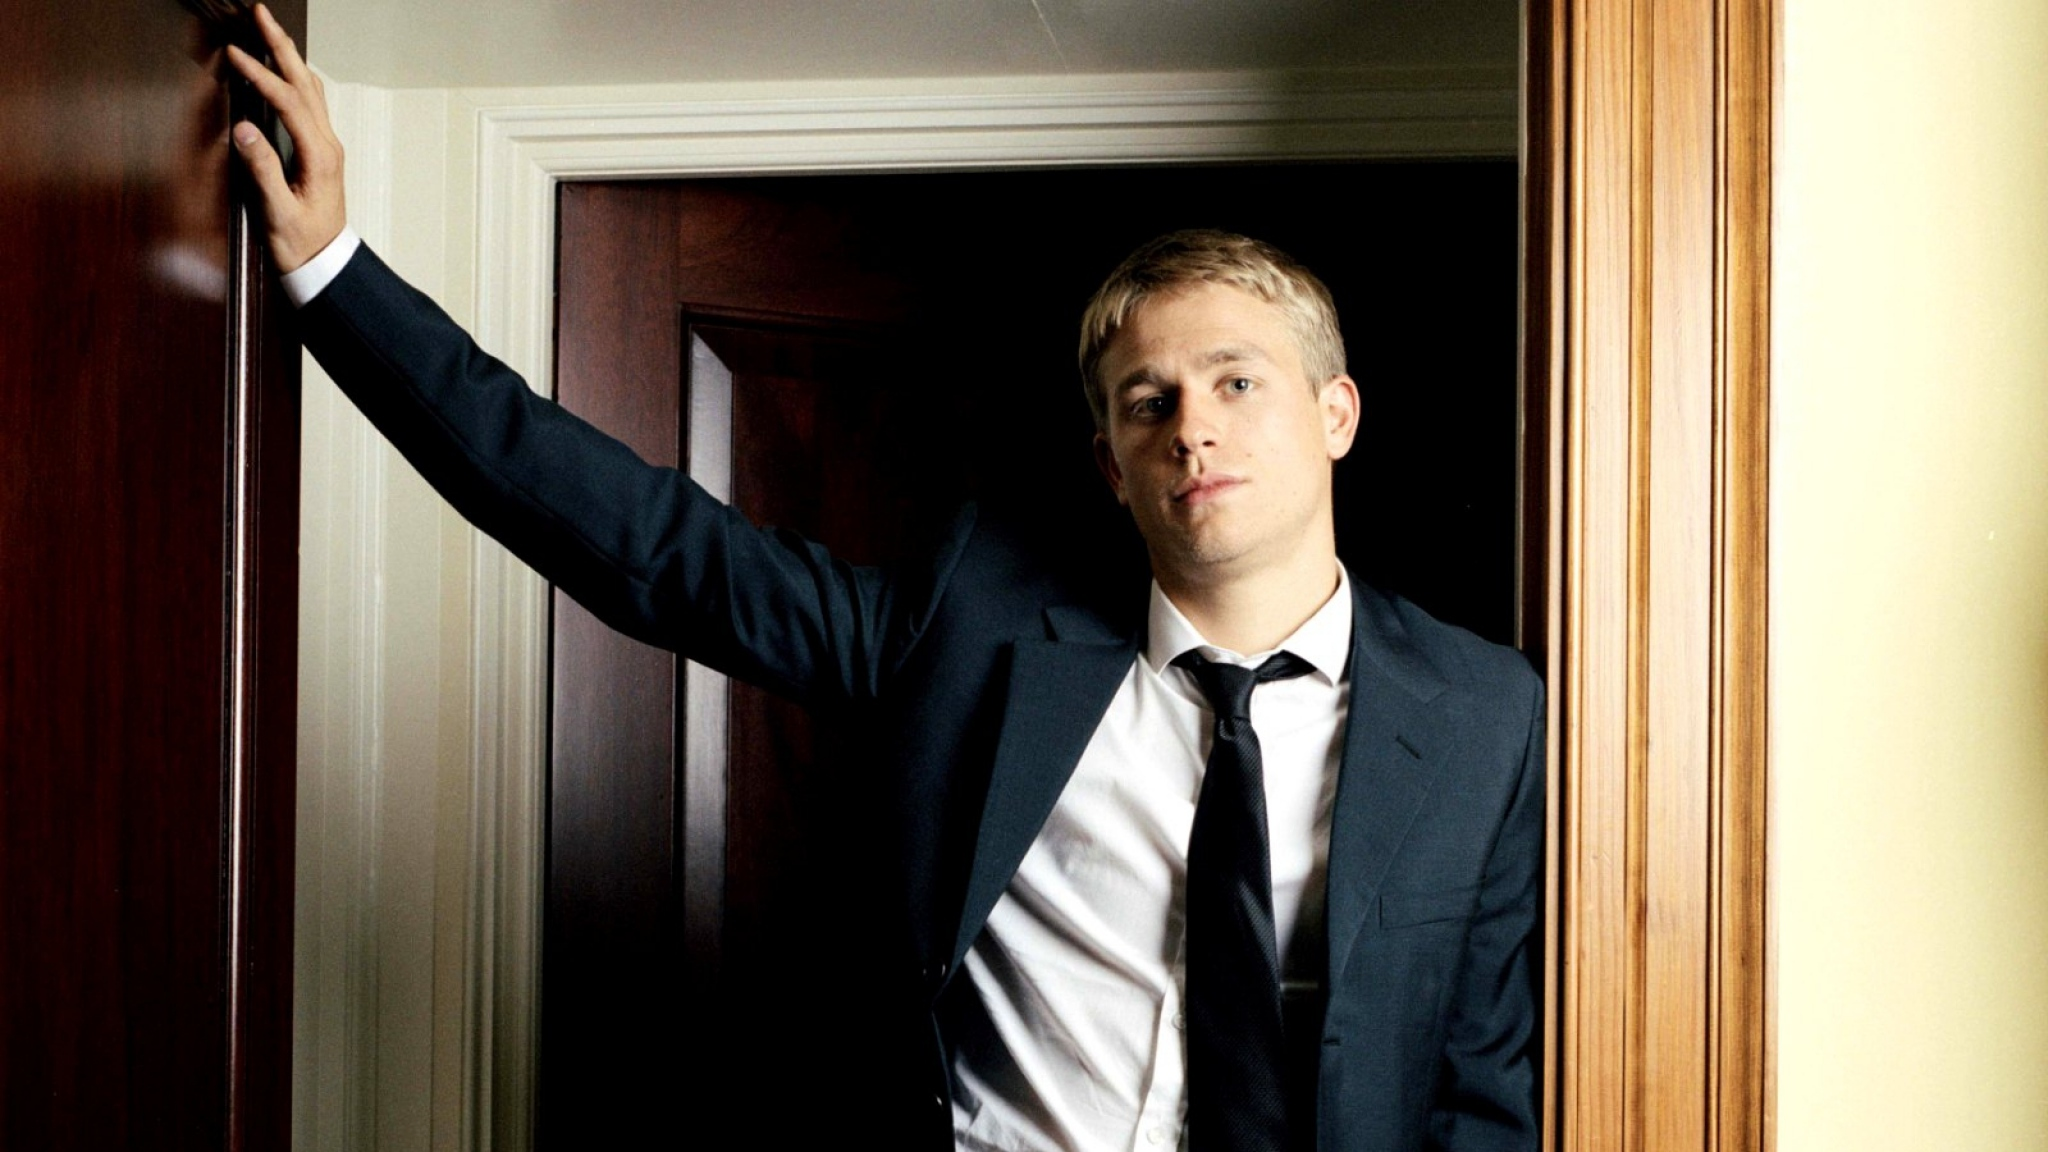 Charlie Hunnam Wallpapers High Resolution and Quality Download 2048x1152